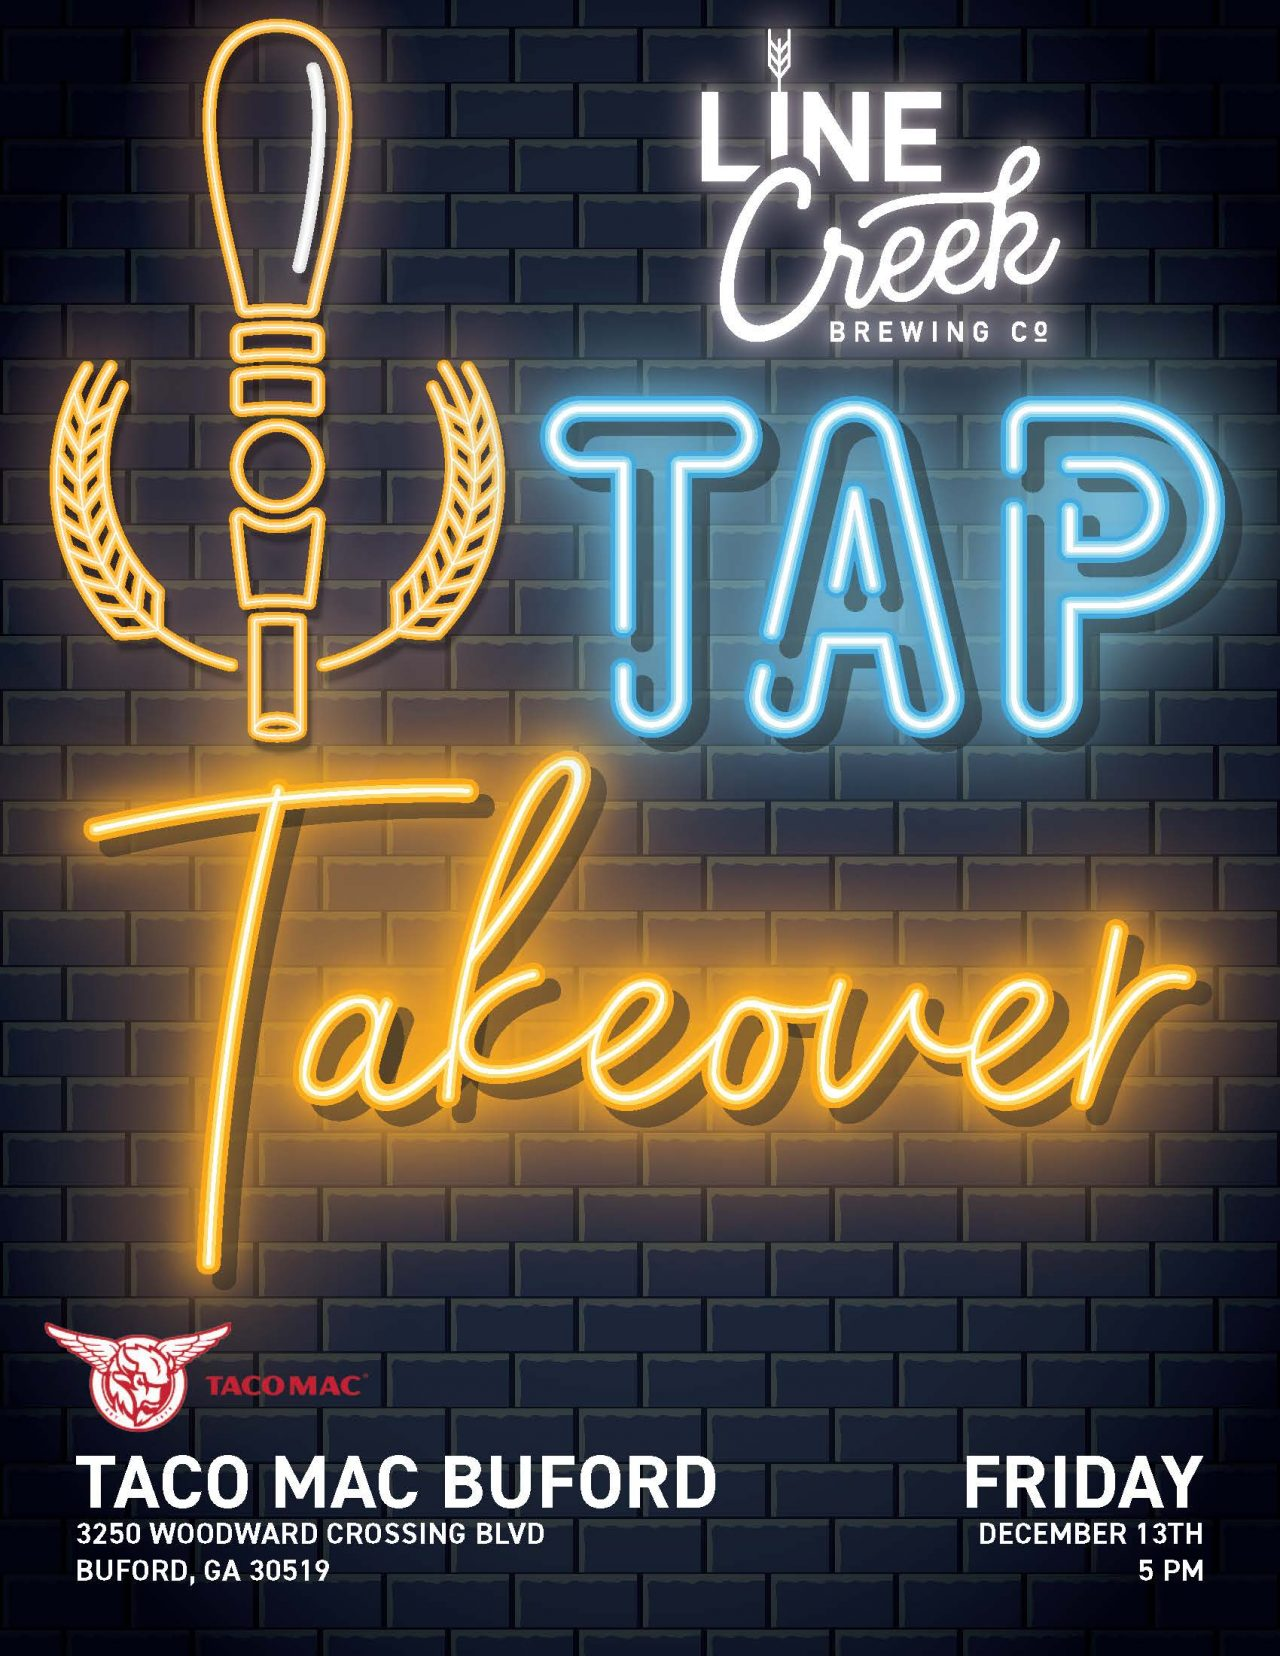 https://linecreekbrewing.com/wp-content/uploads/2019/11/TapTakeover-Dec13-19-1280x1656.jpg